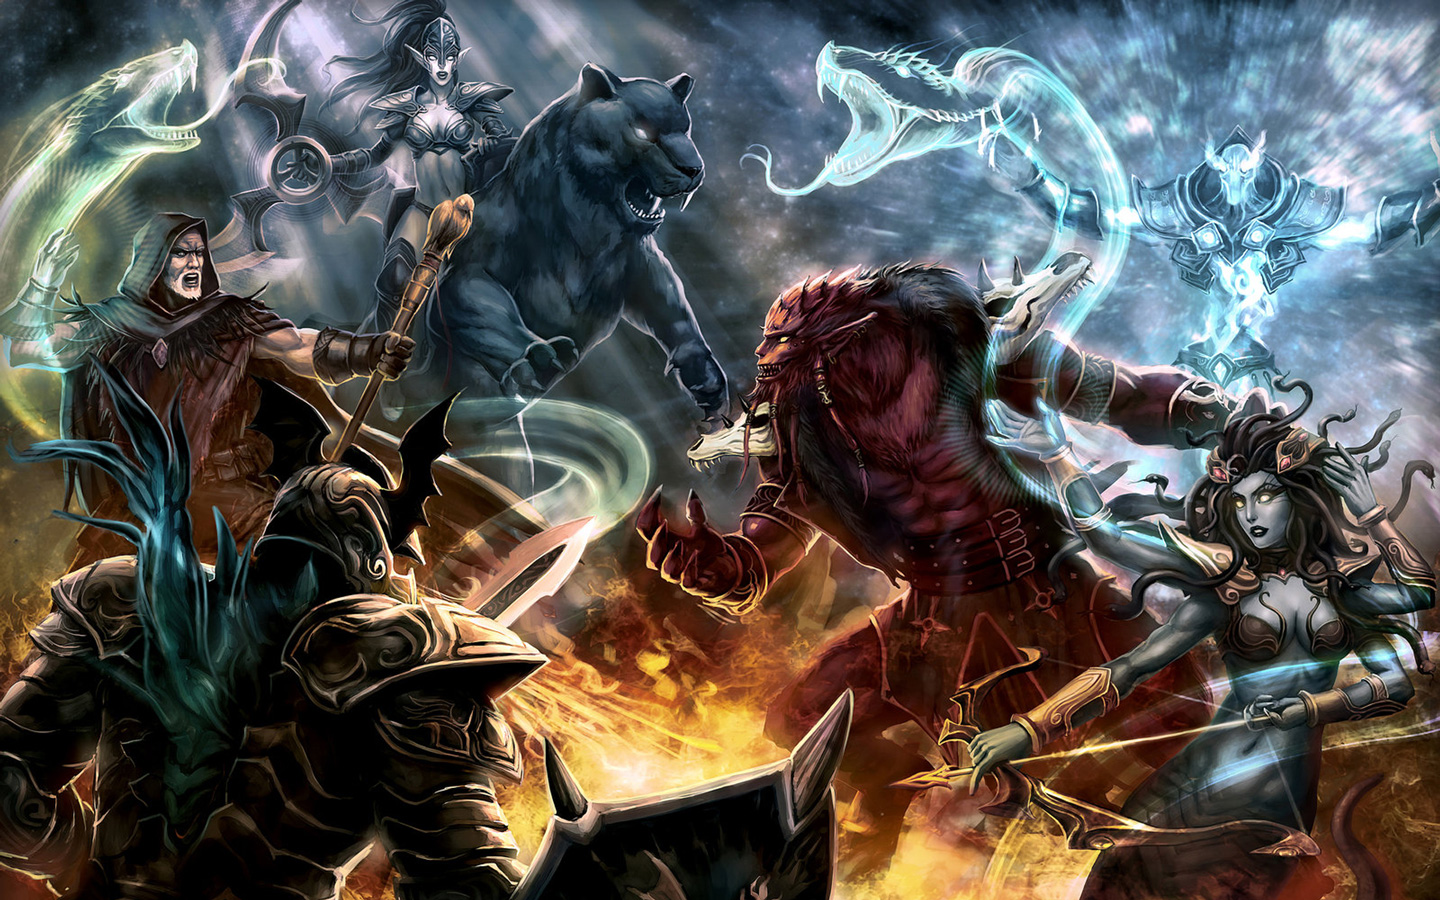 Free DotA: Defense of the Ancients Wallpaper in 1440x900